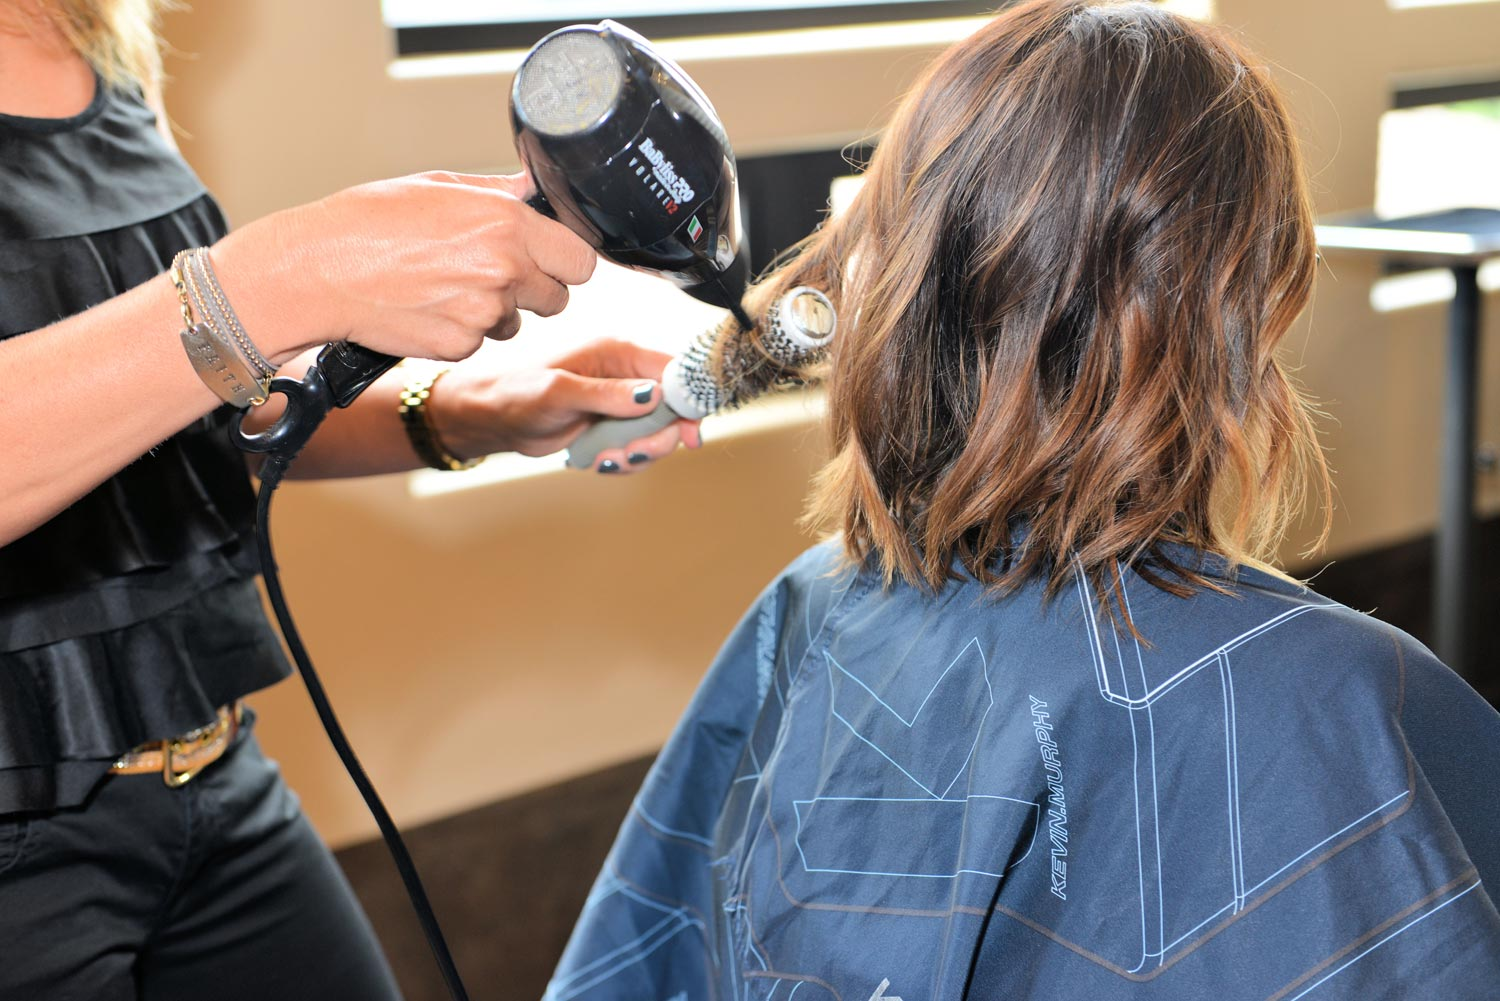 Blow dry technique puts the finishing touch on a great cut.